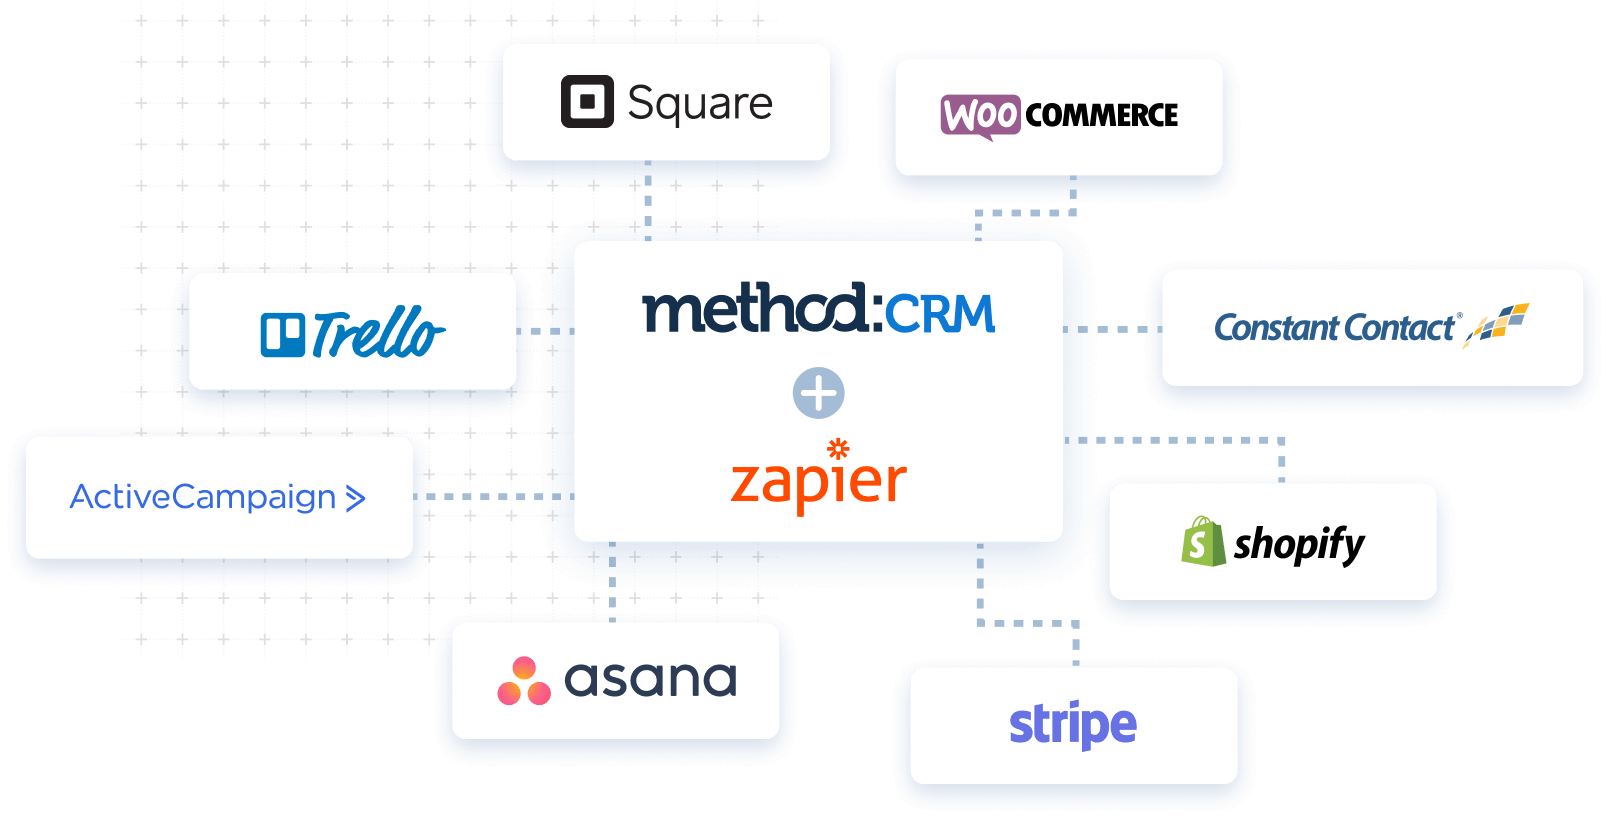 Method:CRM and Zapier logos surrounded by other app logos